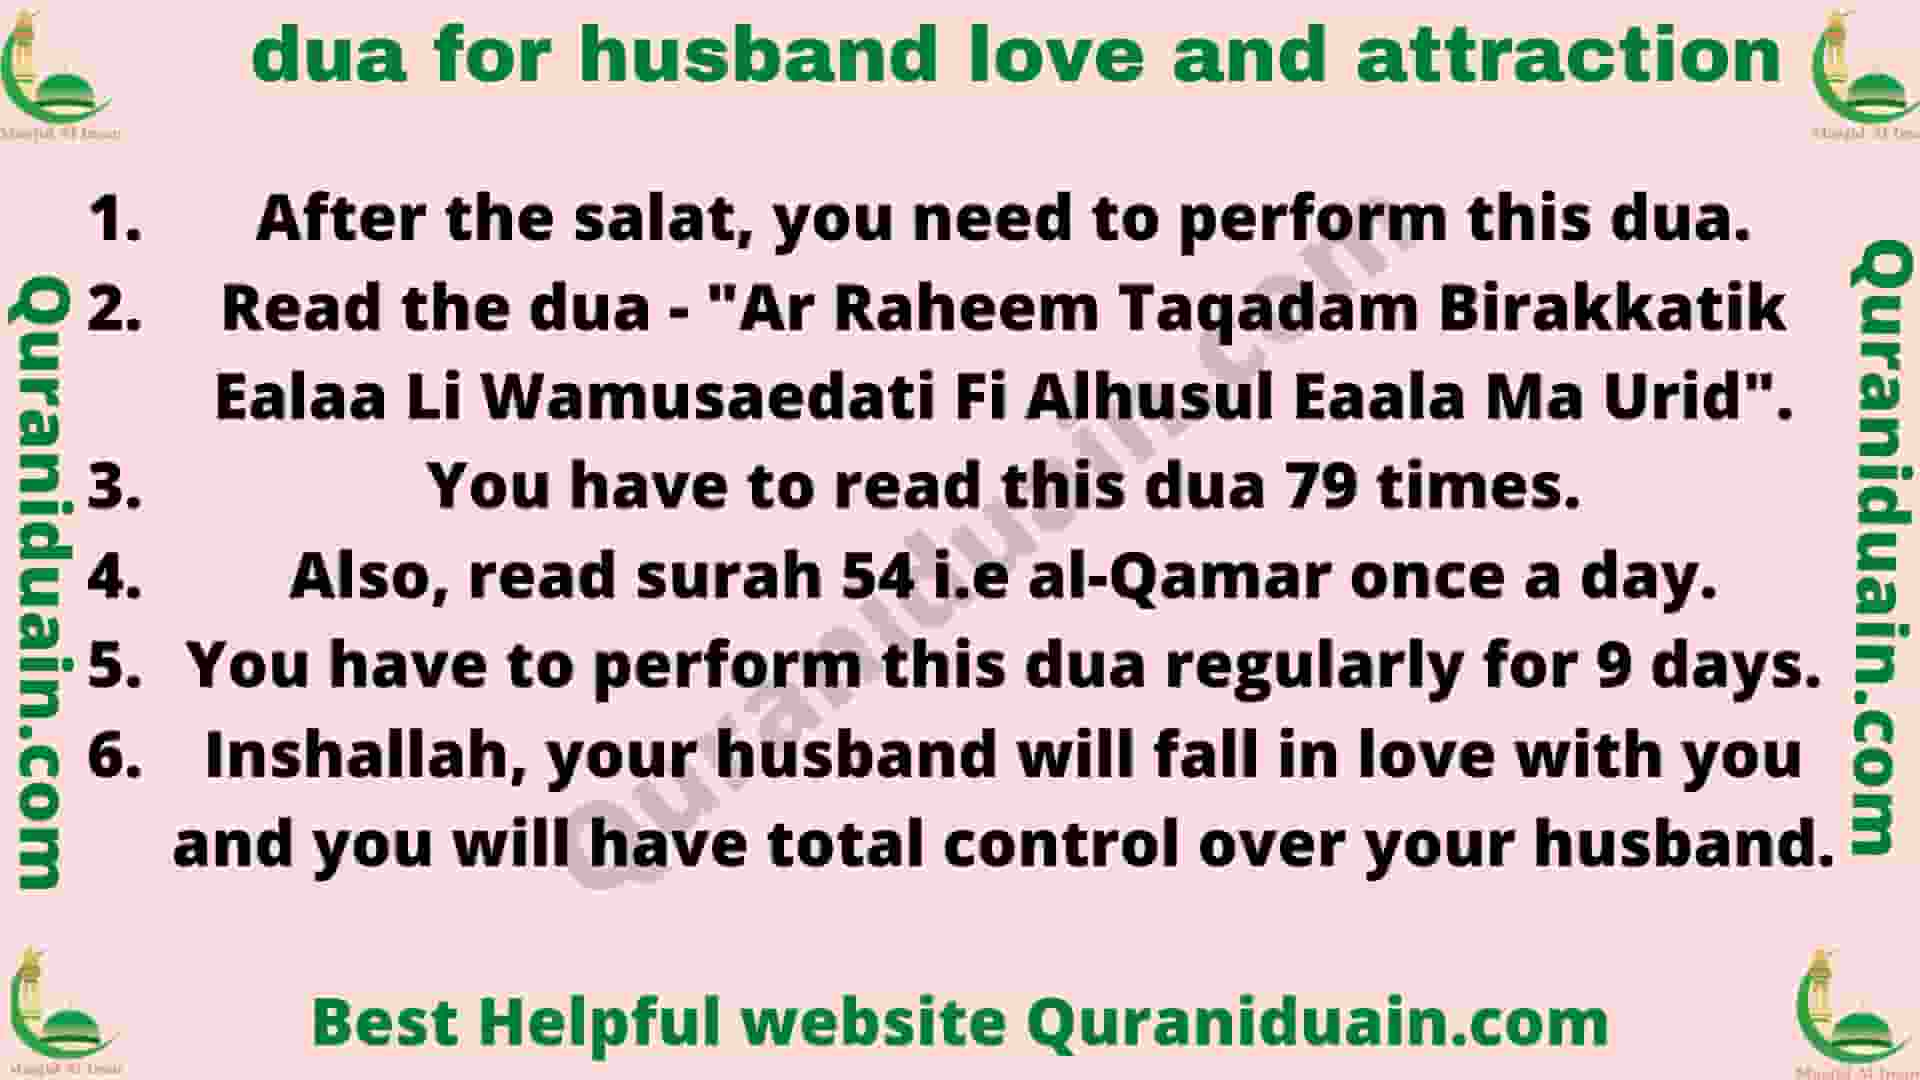 Dua For Husband Love And Attraction